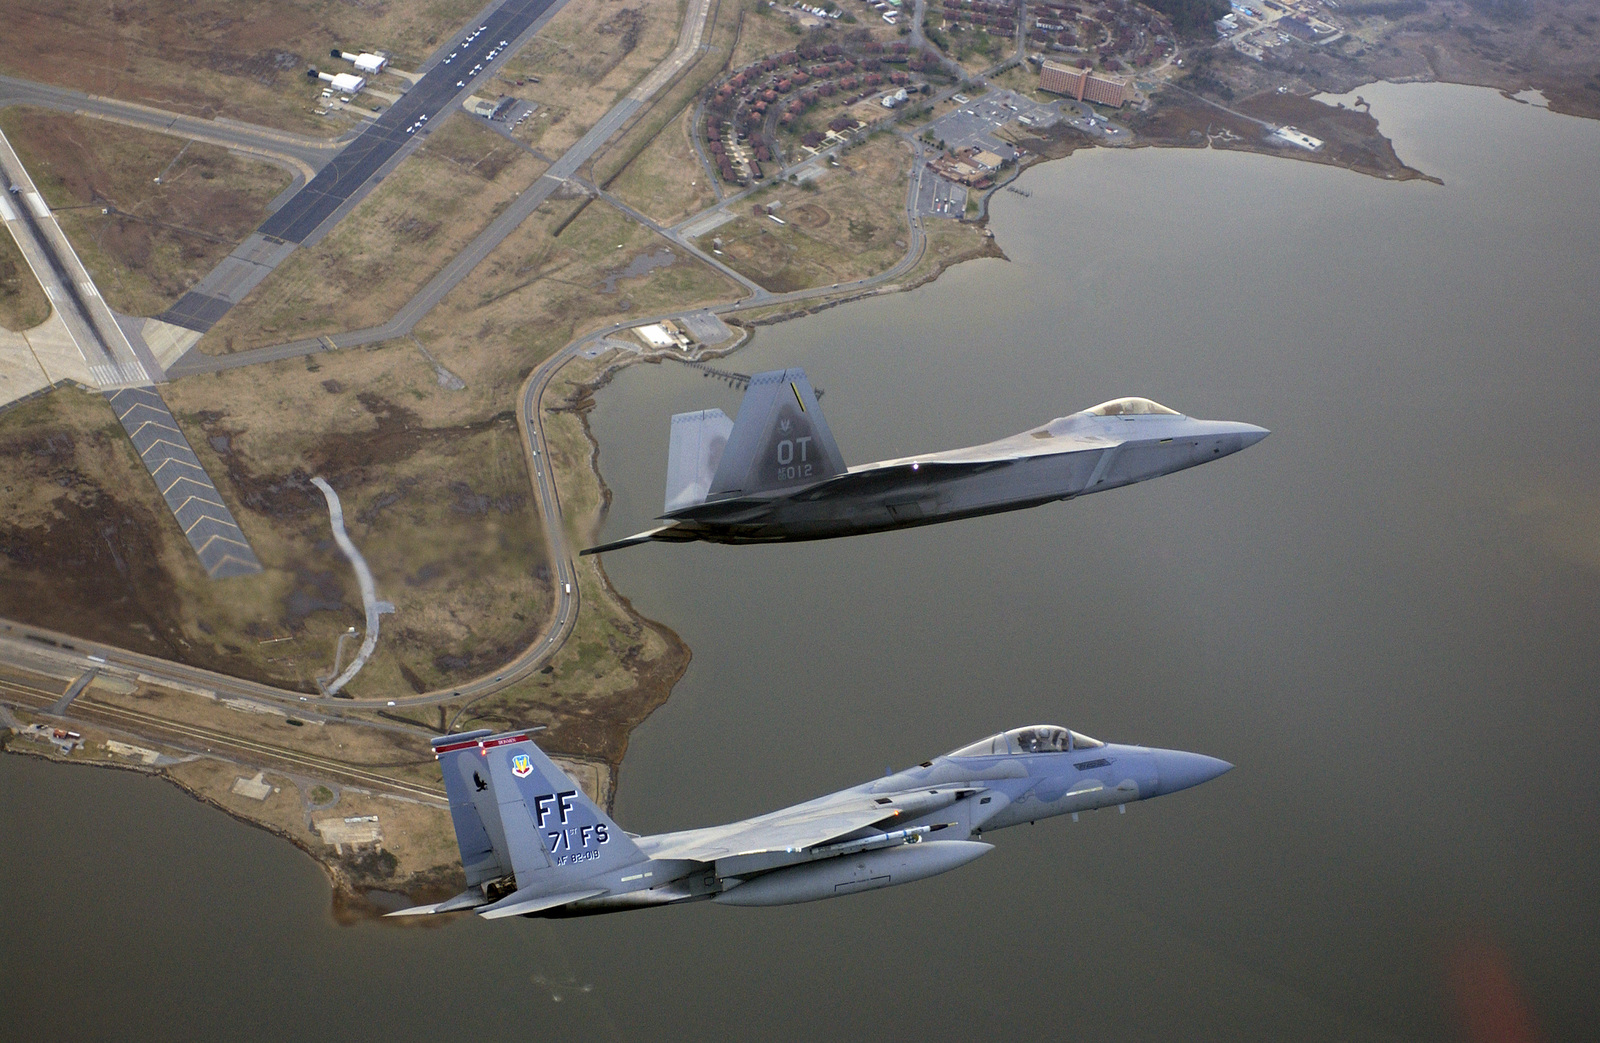 Aerial as US Air Force (USAF) Lieutenant Colonel (LTC) Dave Rose, 422nd Test and Evaluation Squadron (TES), Nellis Air Force Base (AFB), Nevada (NV), pilots the Air Force's new F/A-22 Raptor in formation with an F-15C Eagle piloted by USAF Major (MAJ) Robert Garland, 71st Fighter Squadron (FS), Langley Air Force Base (AFB), Virginia (VA). The two paired up after a historic fly-by by the F/A-22 at the First Flight Centennial Celebration at the Wright Brothers National Memorial in Kill Devil Hills, North Carolina (NC) for a fly-by over the future home of the F/A-22: Langley AFB, VA